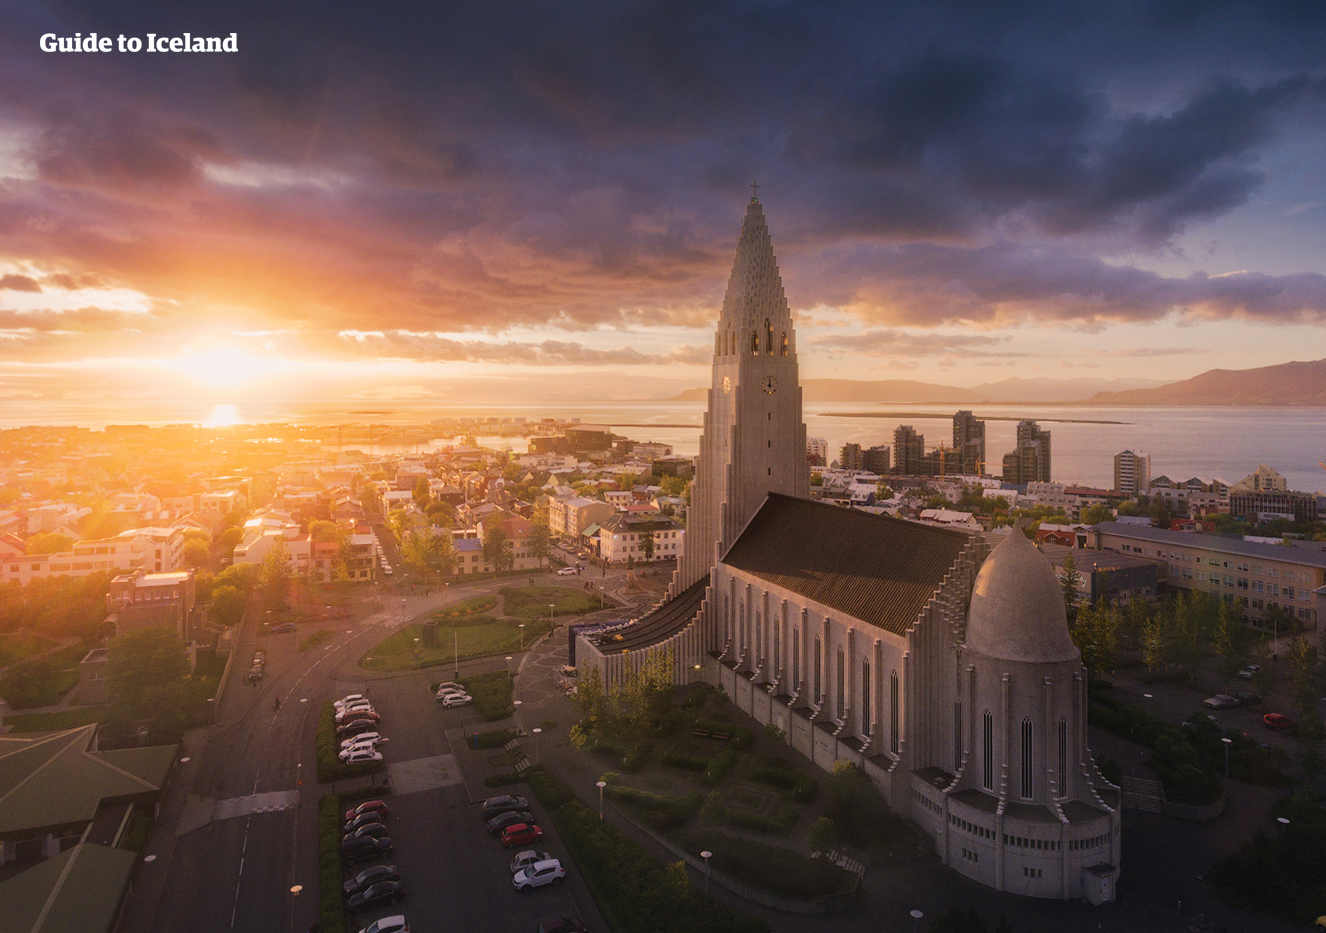 Hallgrimskirkja is one of the most dramatic buildings in Iceland.